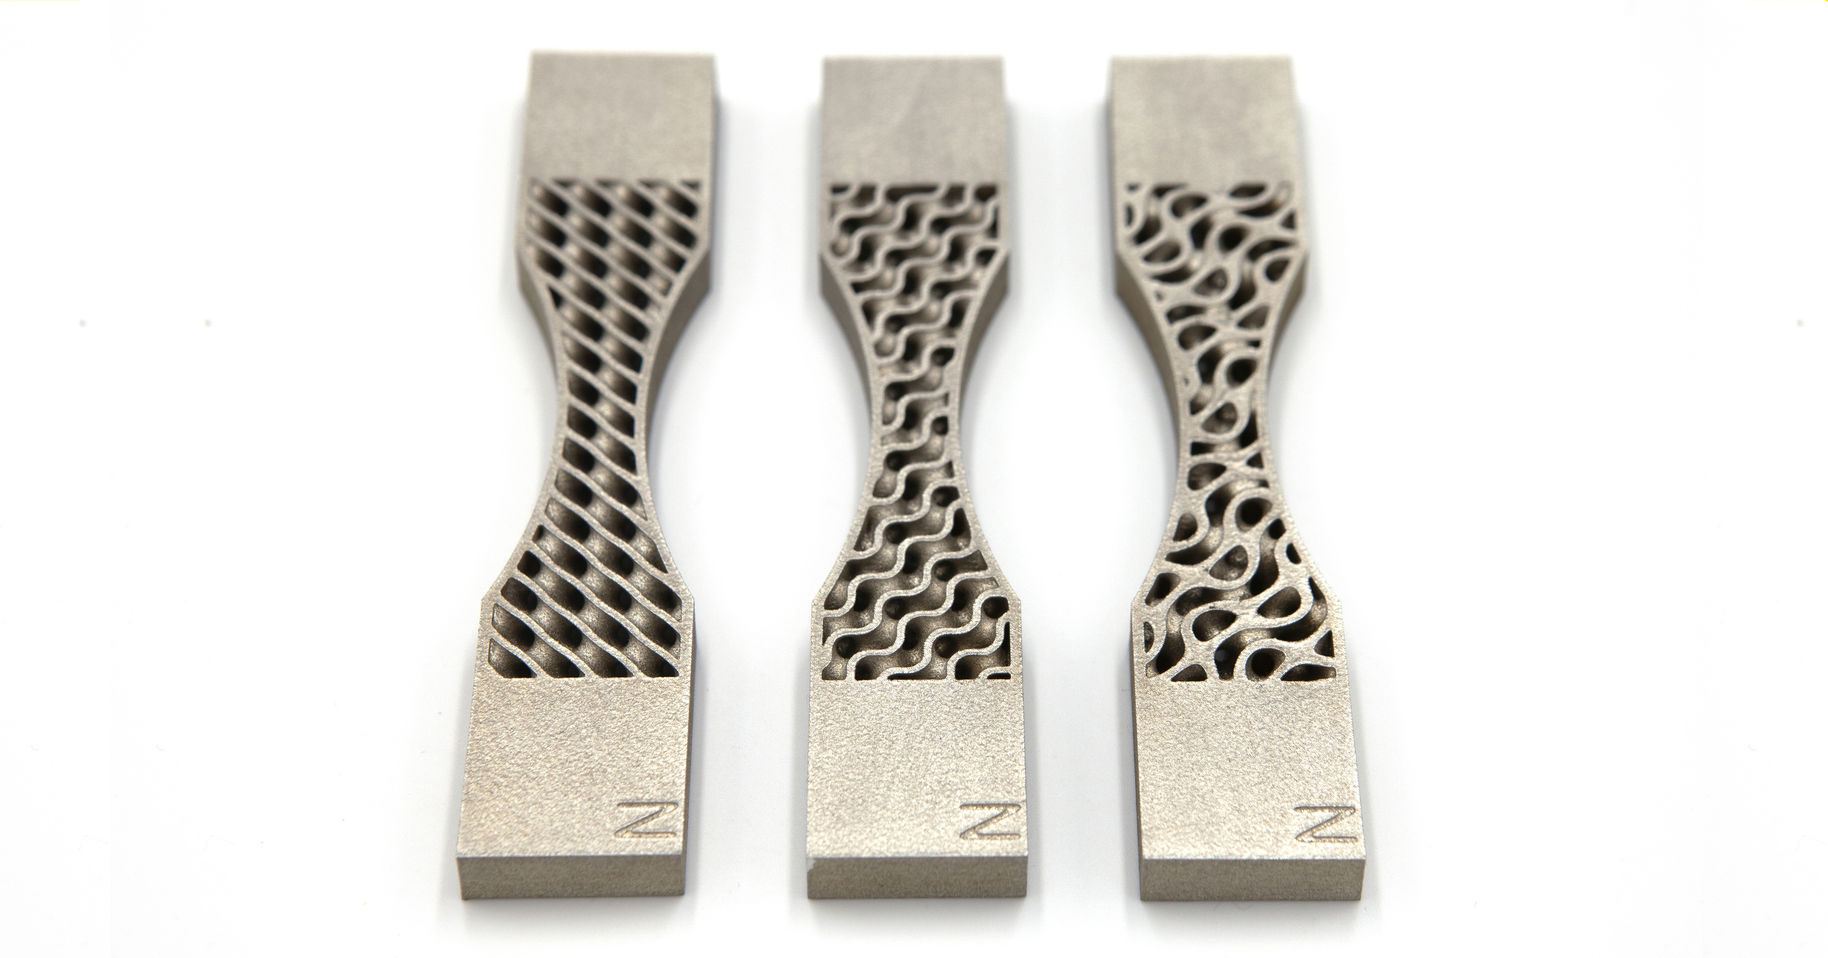 3D printed stainless steel tensile bars with embedded TPMS structures | Niclas Strömberg